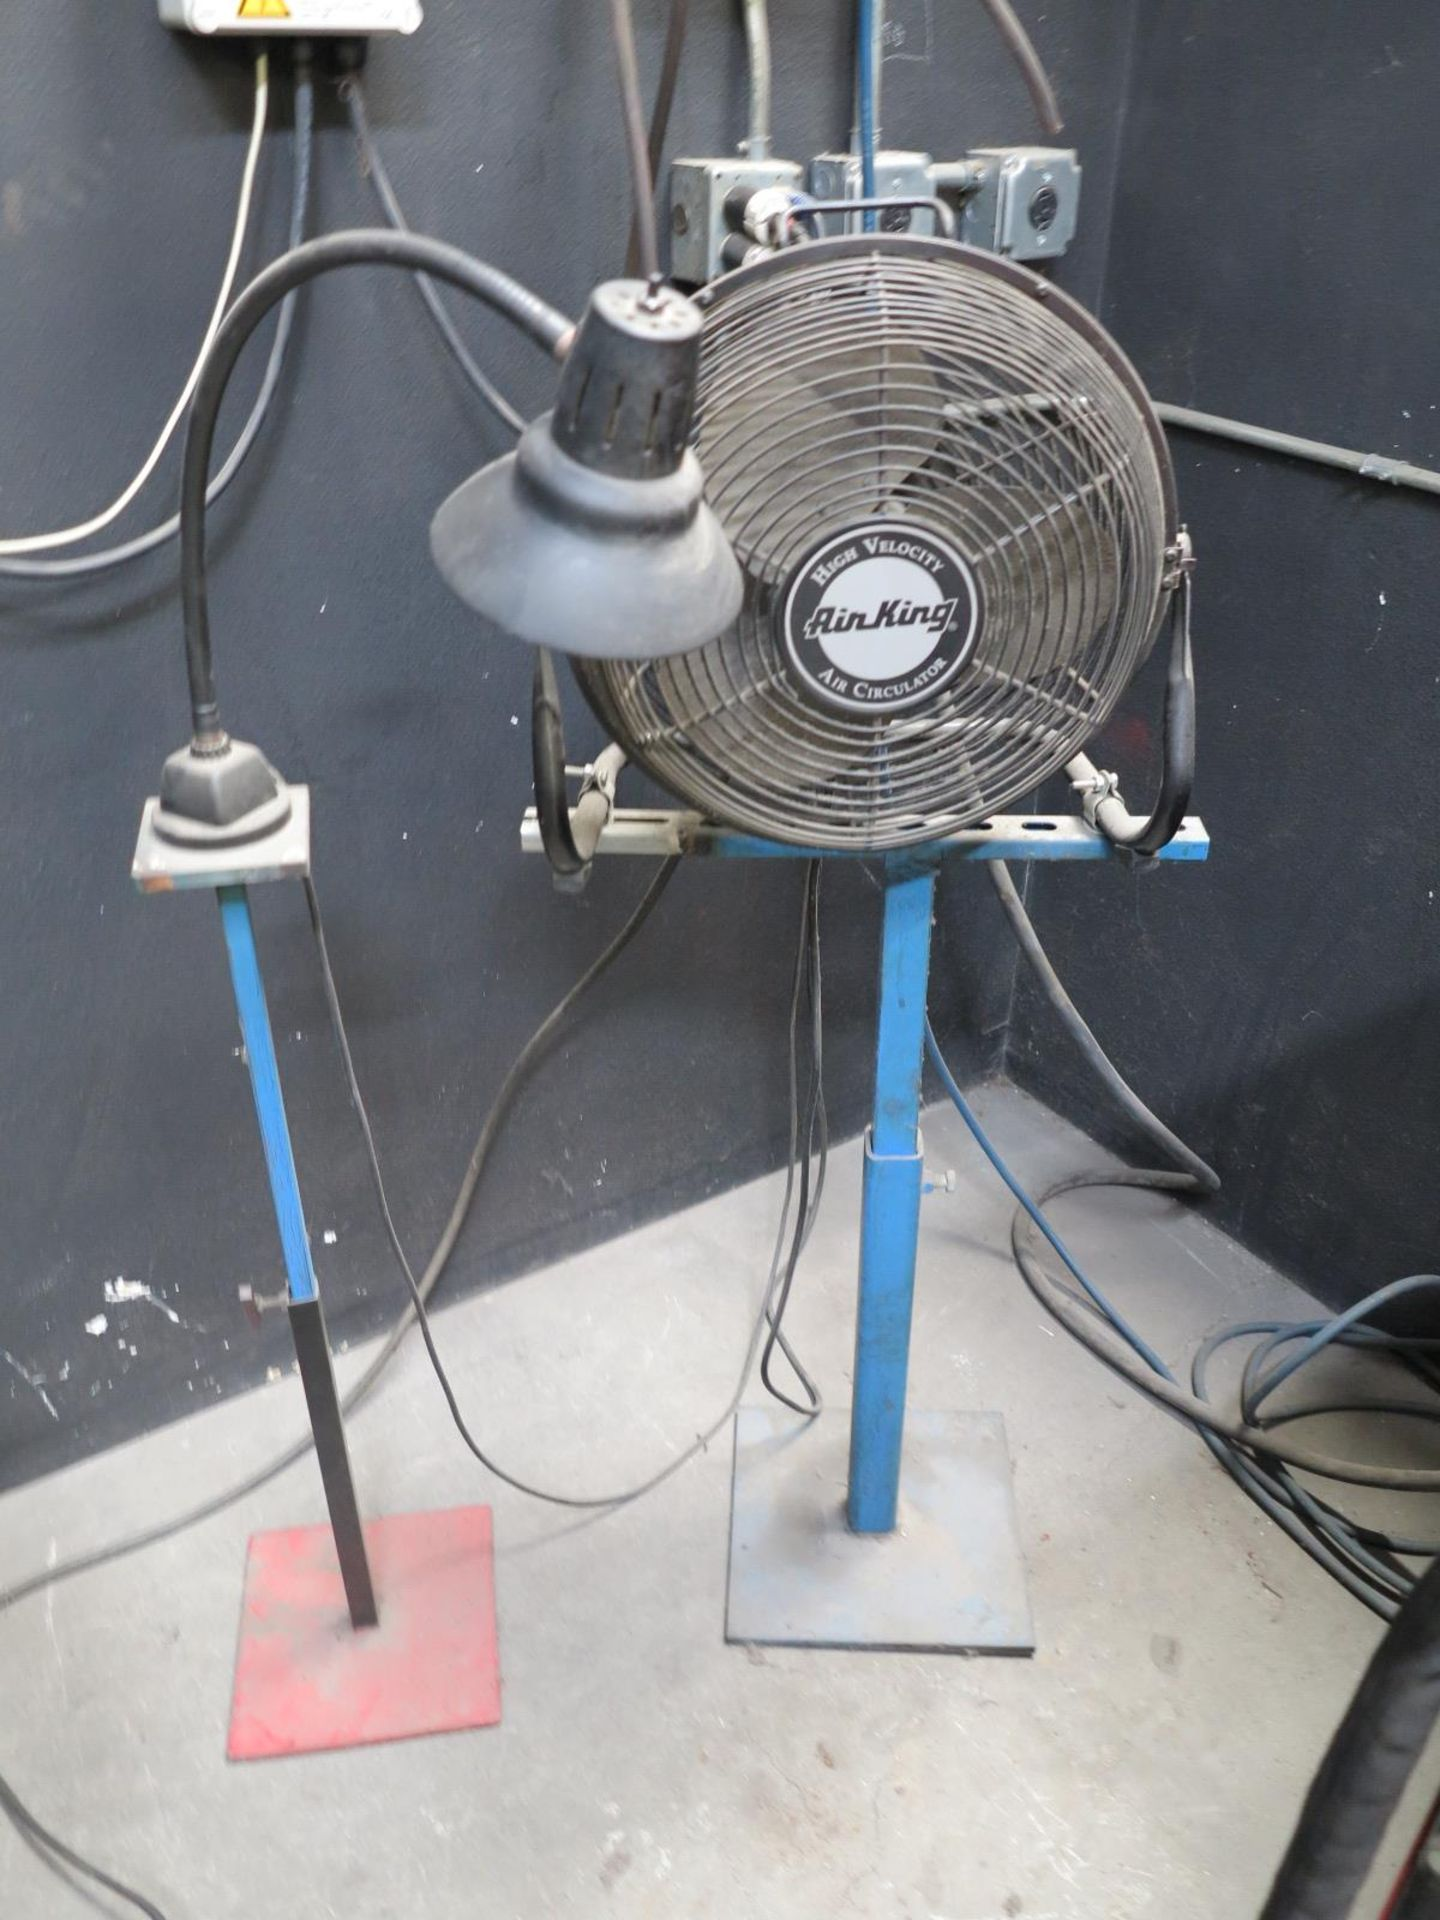 Lot 715 - LOT - (4) SMALL MATERIAL STANDS, (1) FAN W/ STAND AND (1) LIGHT W/ STAND